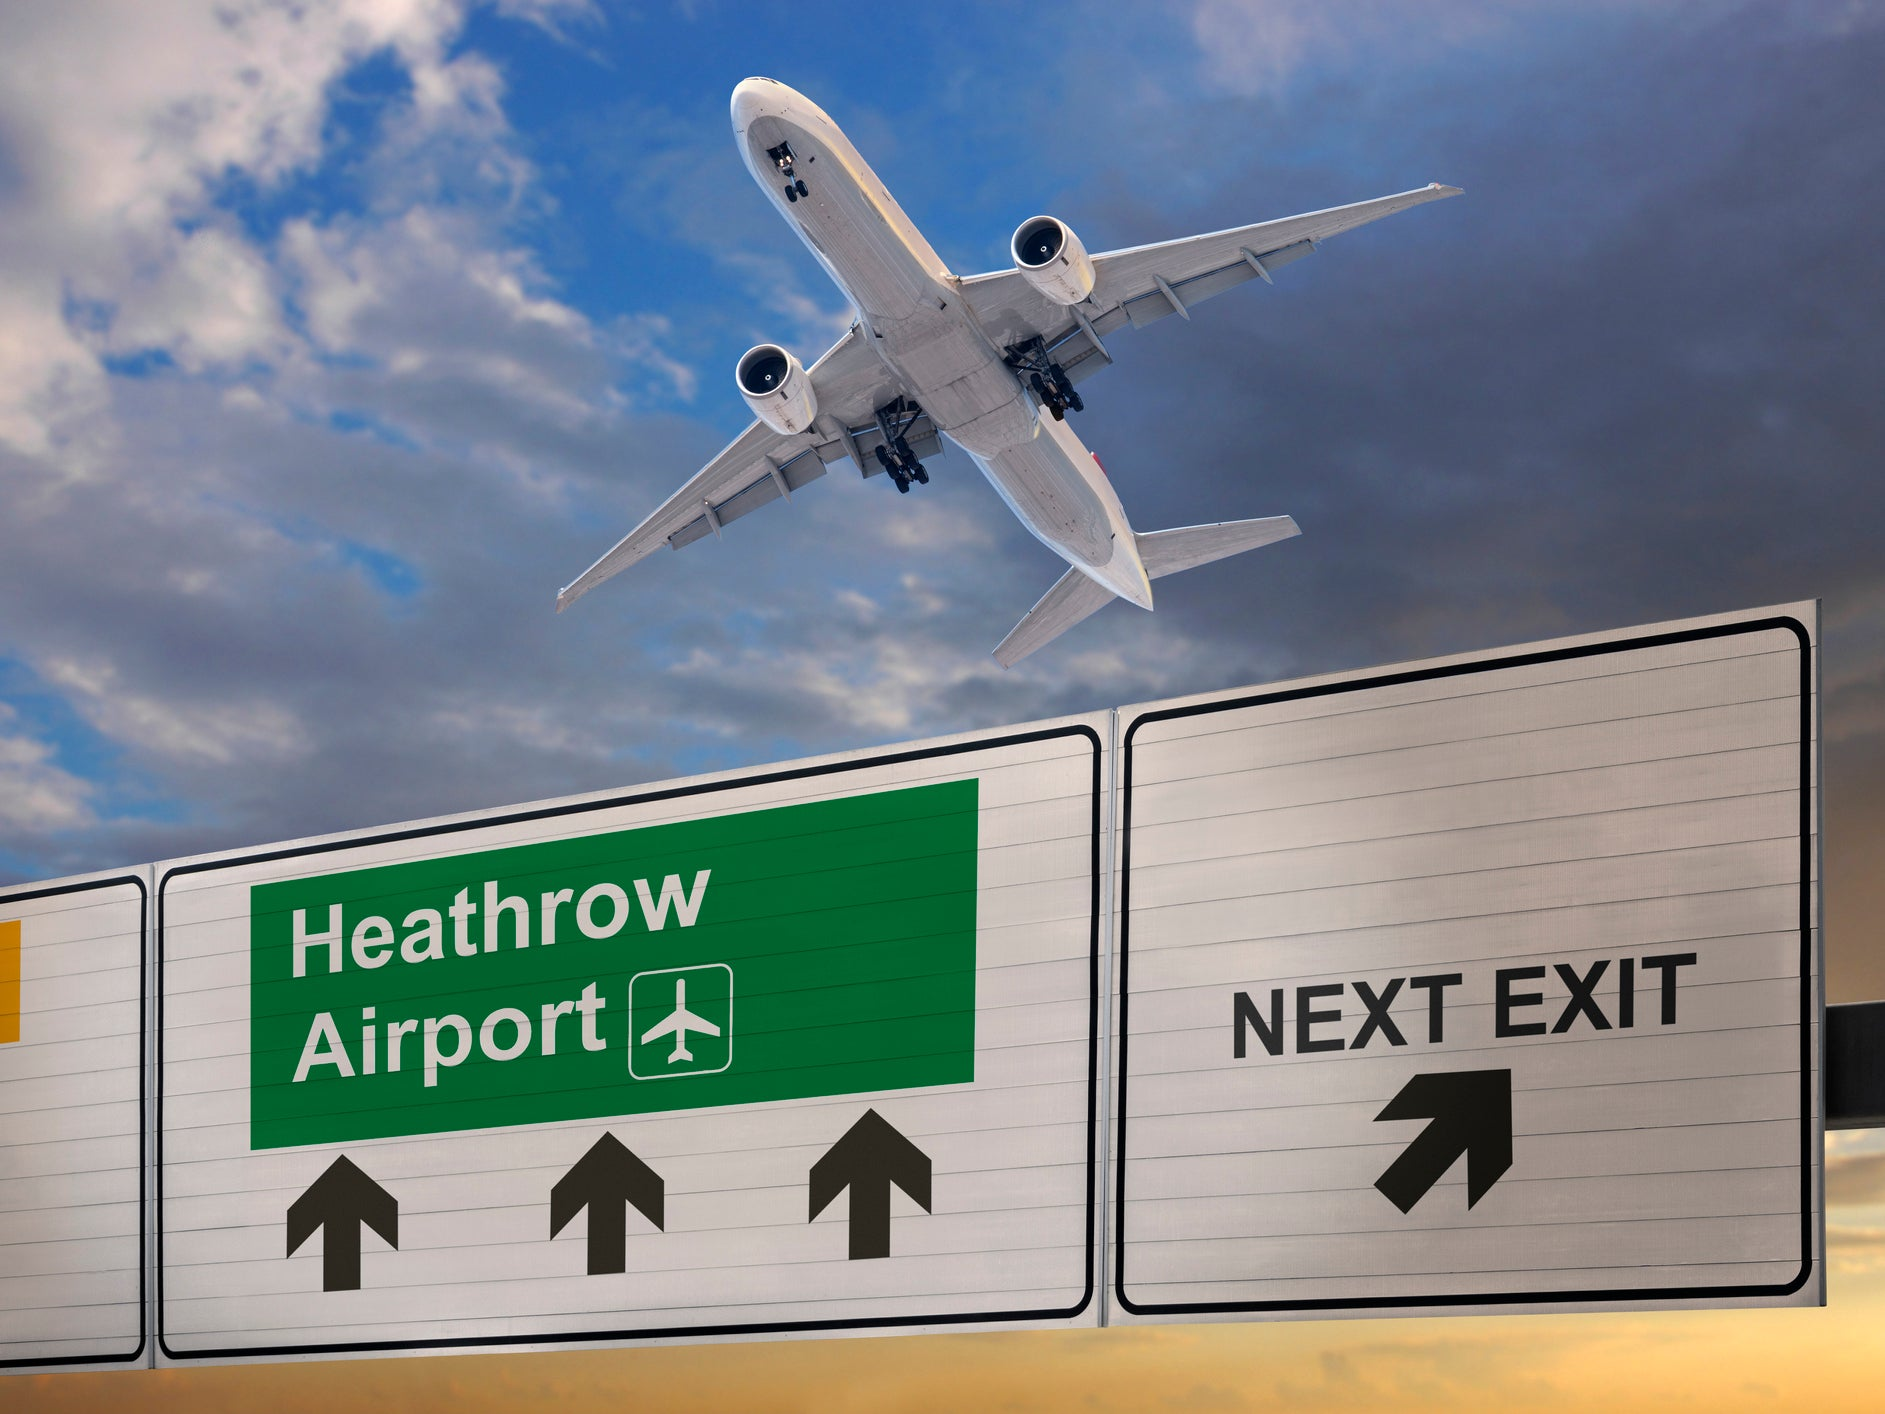 Climate change crisis: Flying is 'not the enemy' Heathrow boss insists